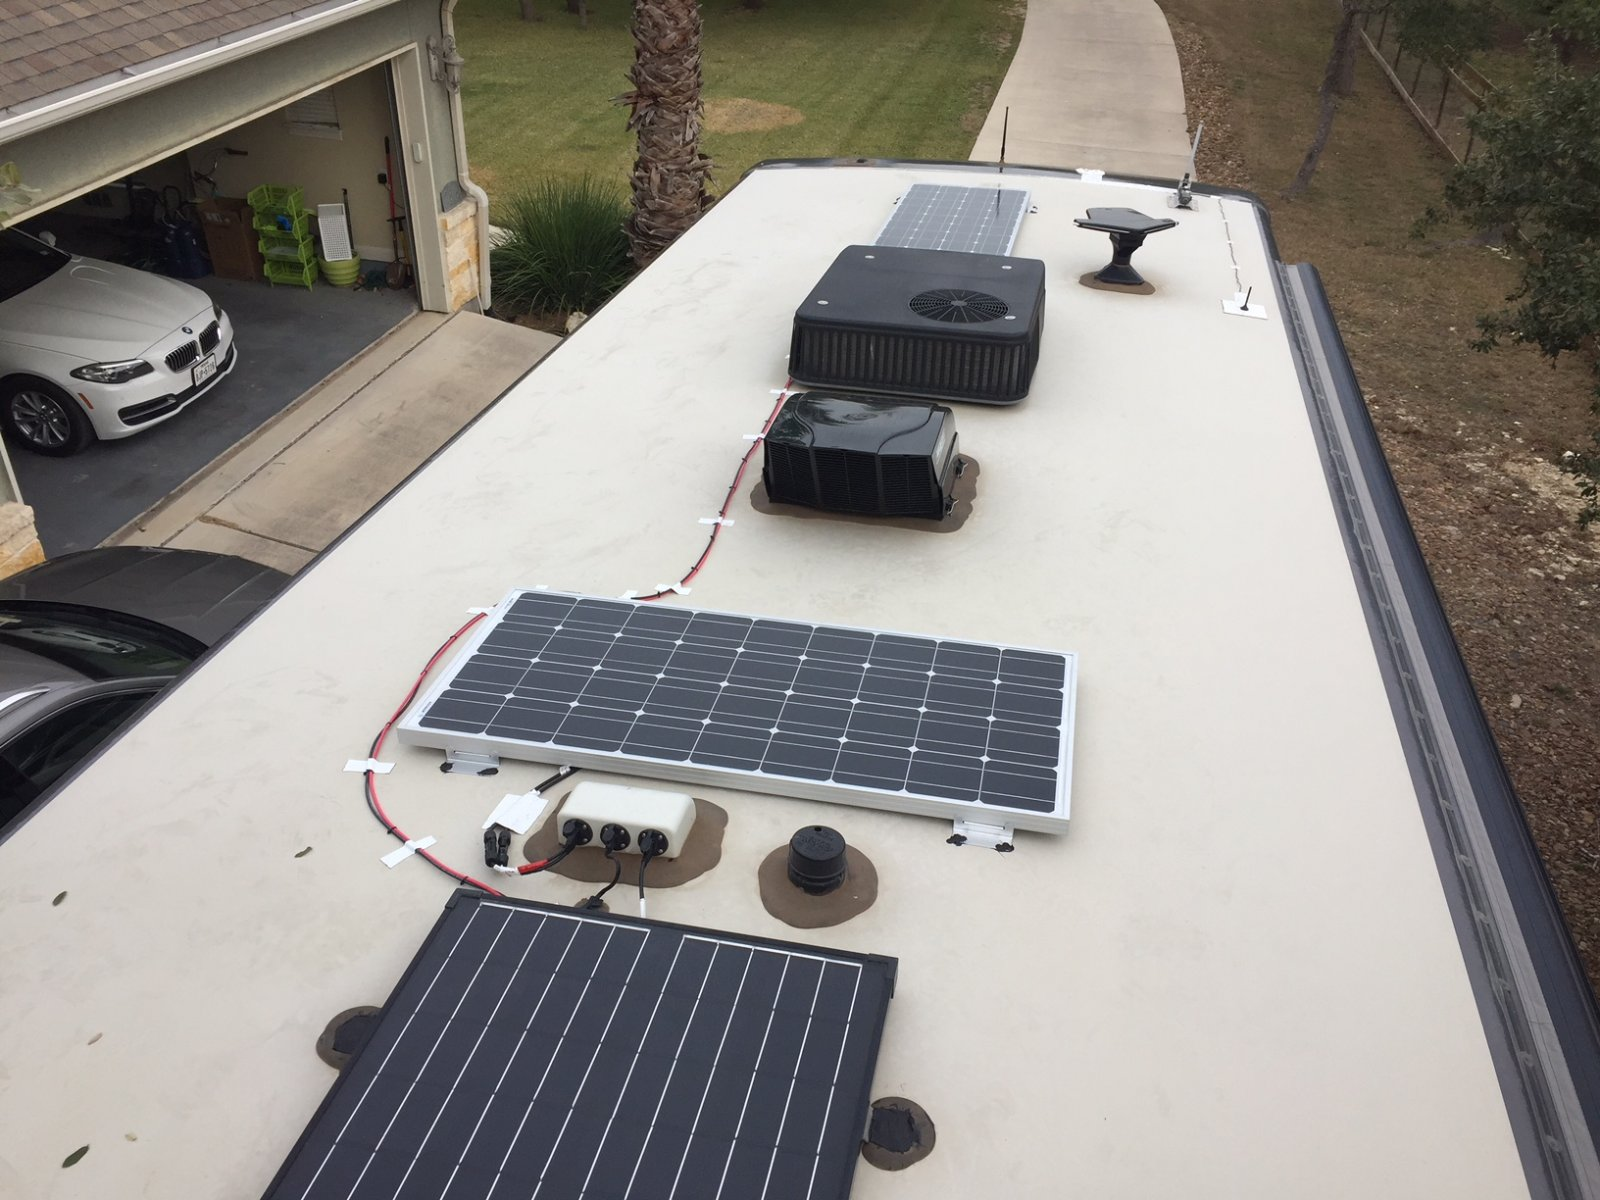 Click image for larger version  Name:RV Solar3.jpg Views:35 Size:265.7 KB ID:169930